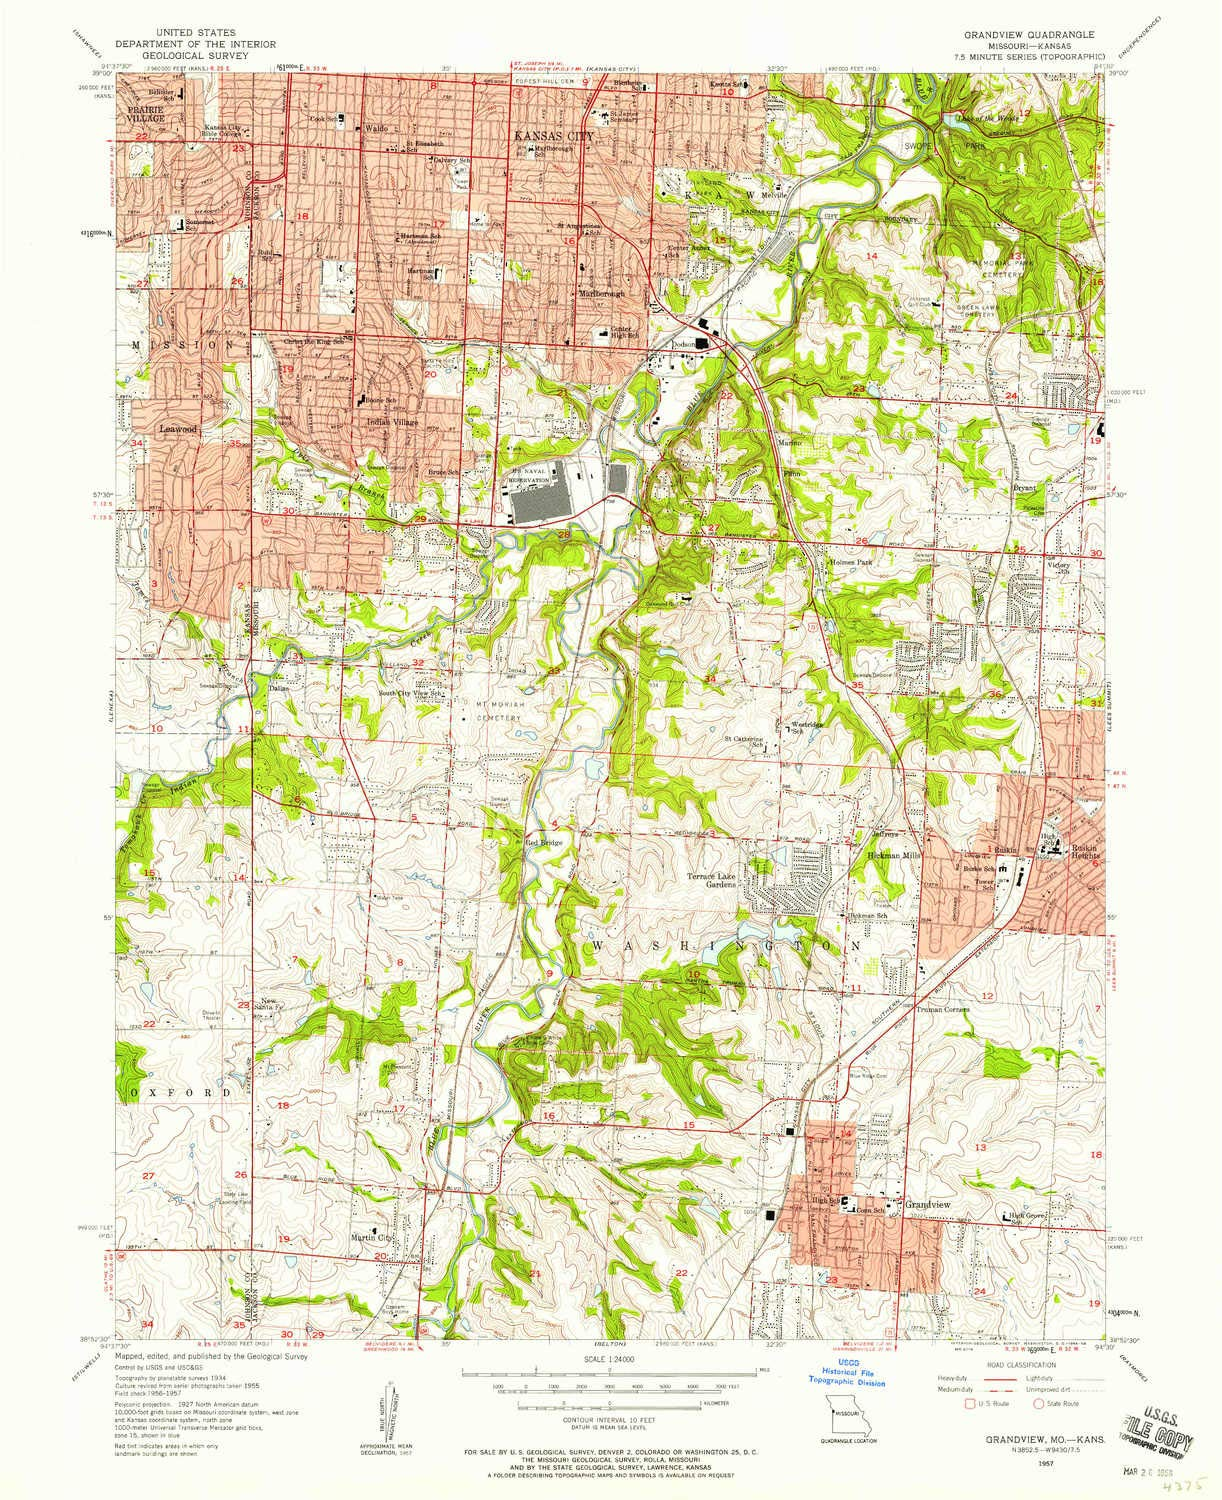 Amazon.com : YellowMaps Grandview MO topo map, 1:24000 Scale ... on map of northwest missouri, map of missouri towns, map of el dorado springs missouri, map of crystal lakes missouri, map of trimble missouri, map of palmer missouri, map of saint joseph missouri, map of mehlville missouri, map of houston missouri, map of franklin county missouri, map of fair grove missouri, map of brookfield missouri, map of de soto missouri, map of hamilton missouri, map of moscow mills missouri, map of union missouri, map of house springs missouri, map of athens missouri, map of bunker missouri, map of hayti missouri,